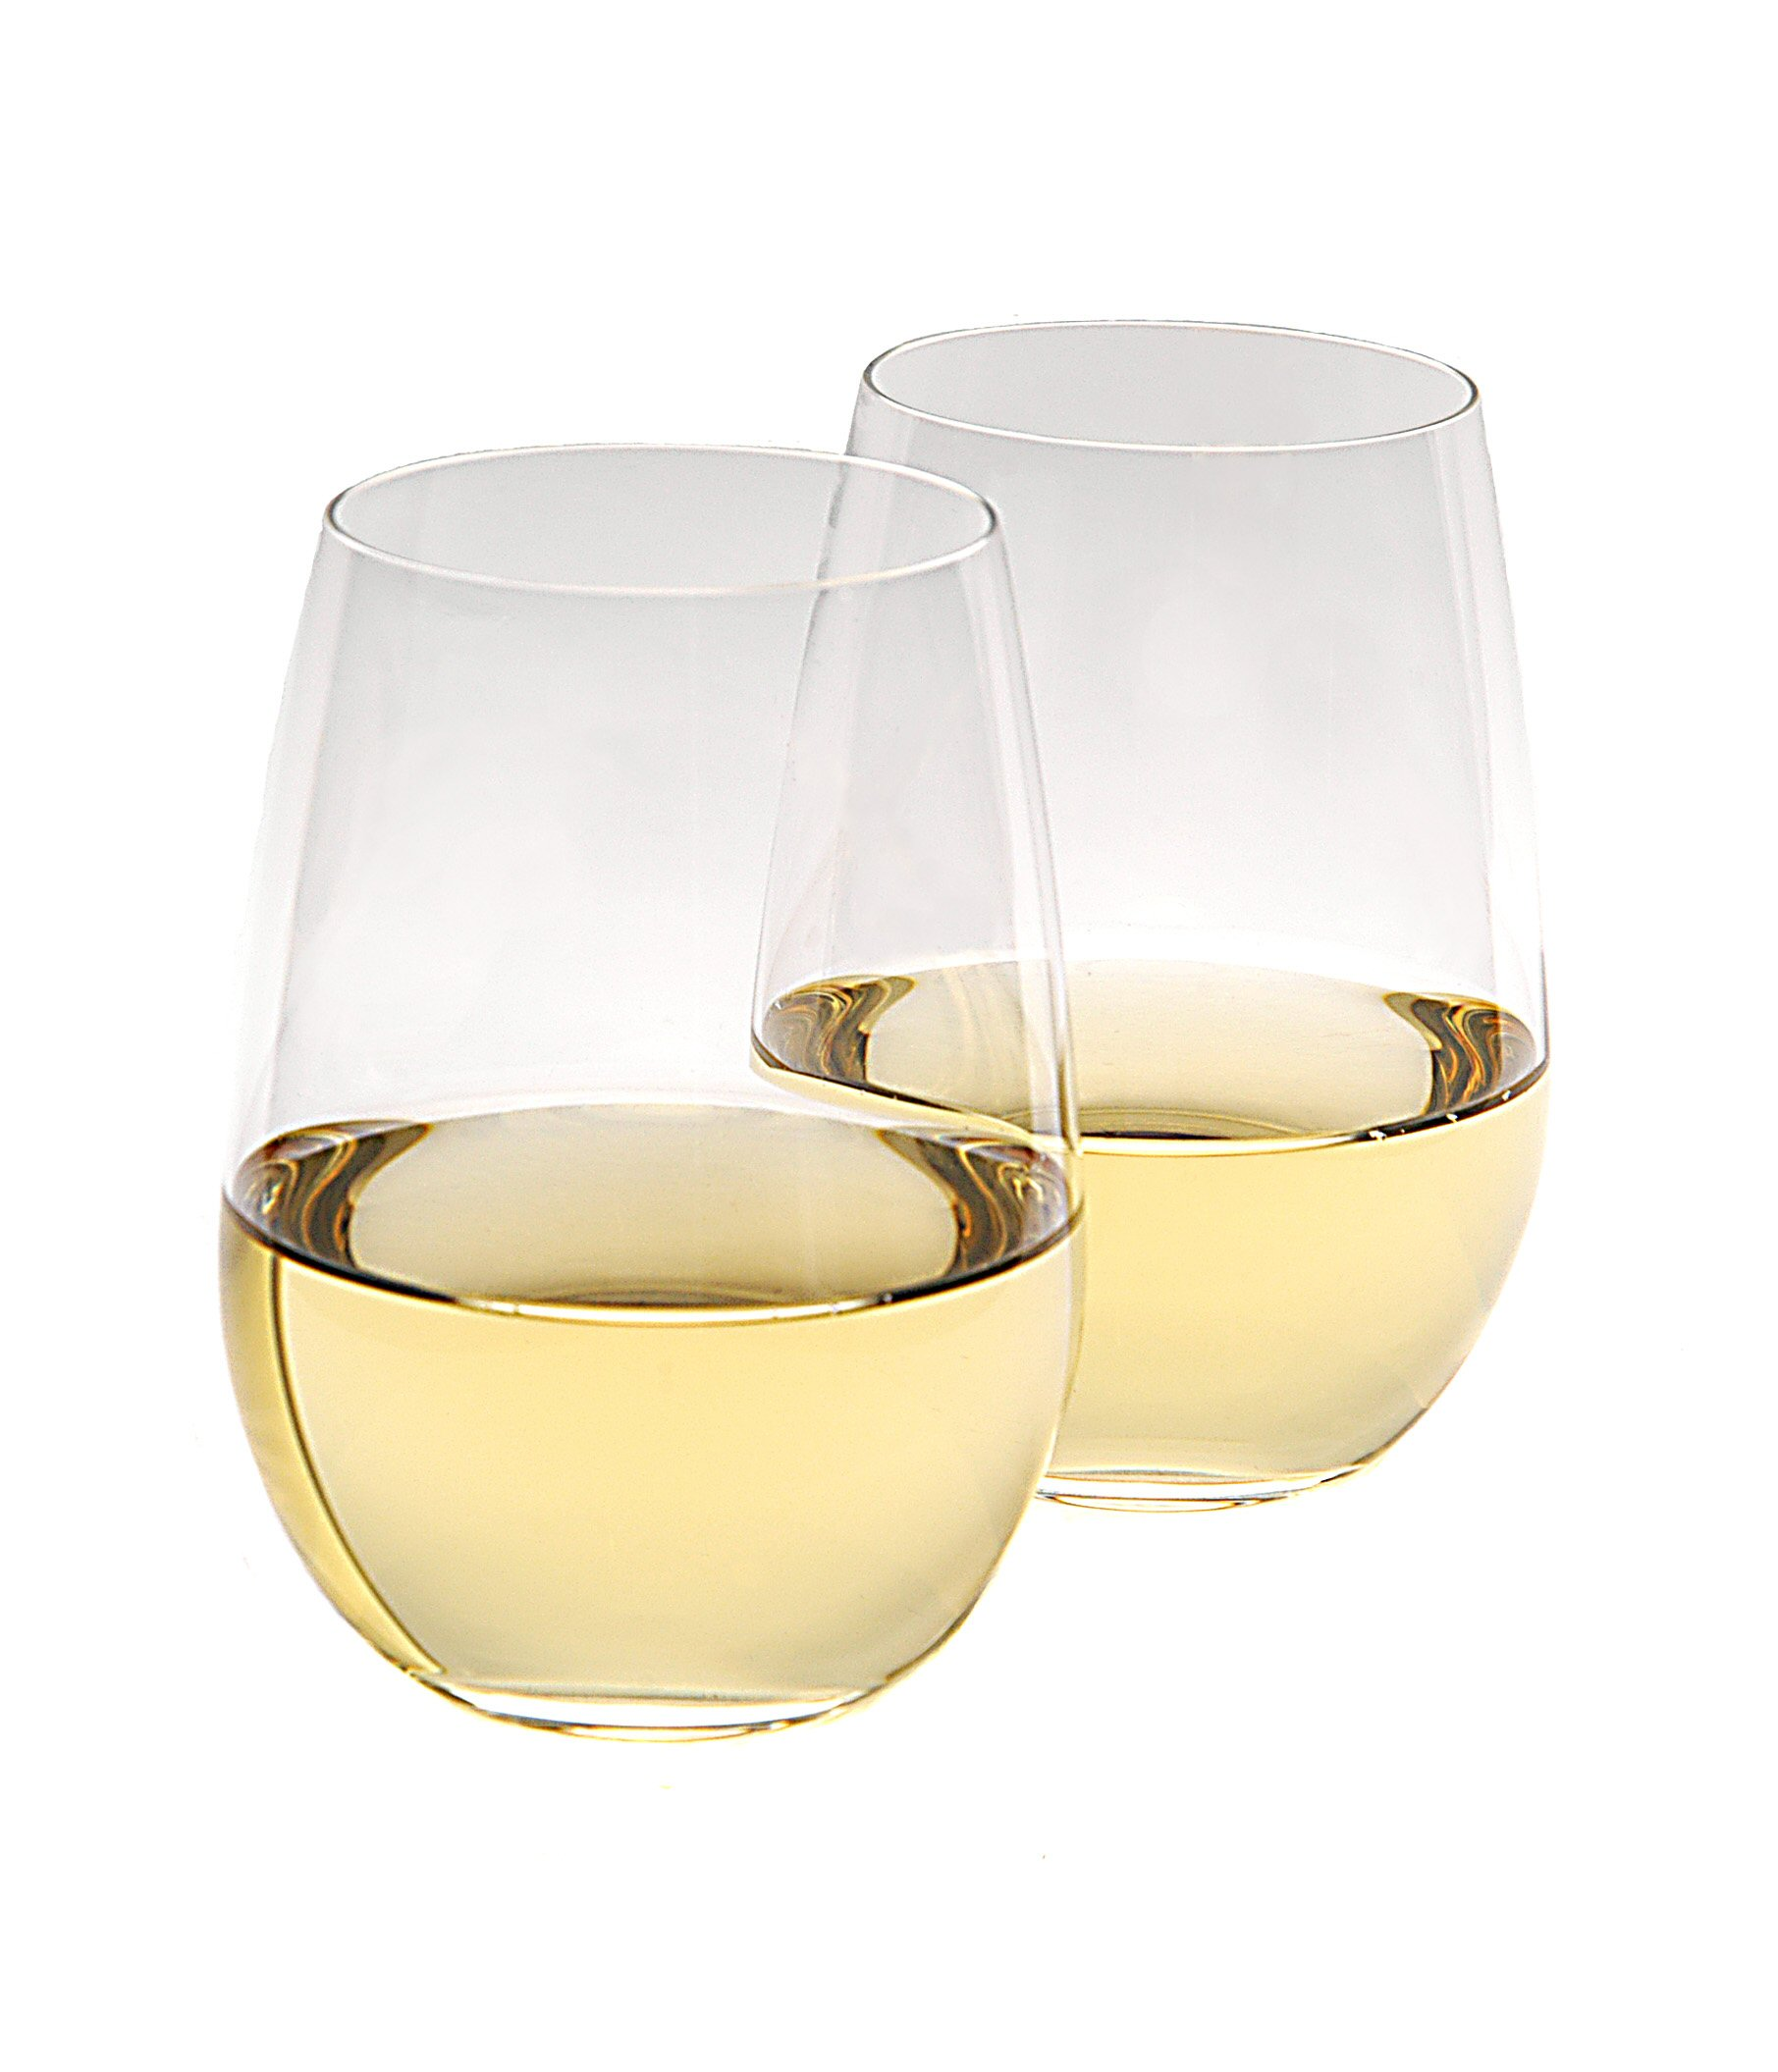 Stemless white wine glasses the stemless wine glass site - Stemless wine goblets ...